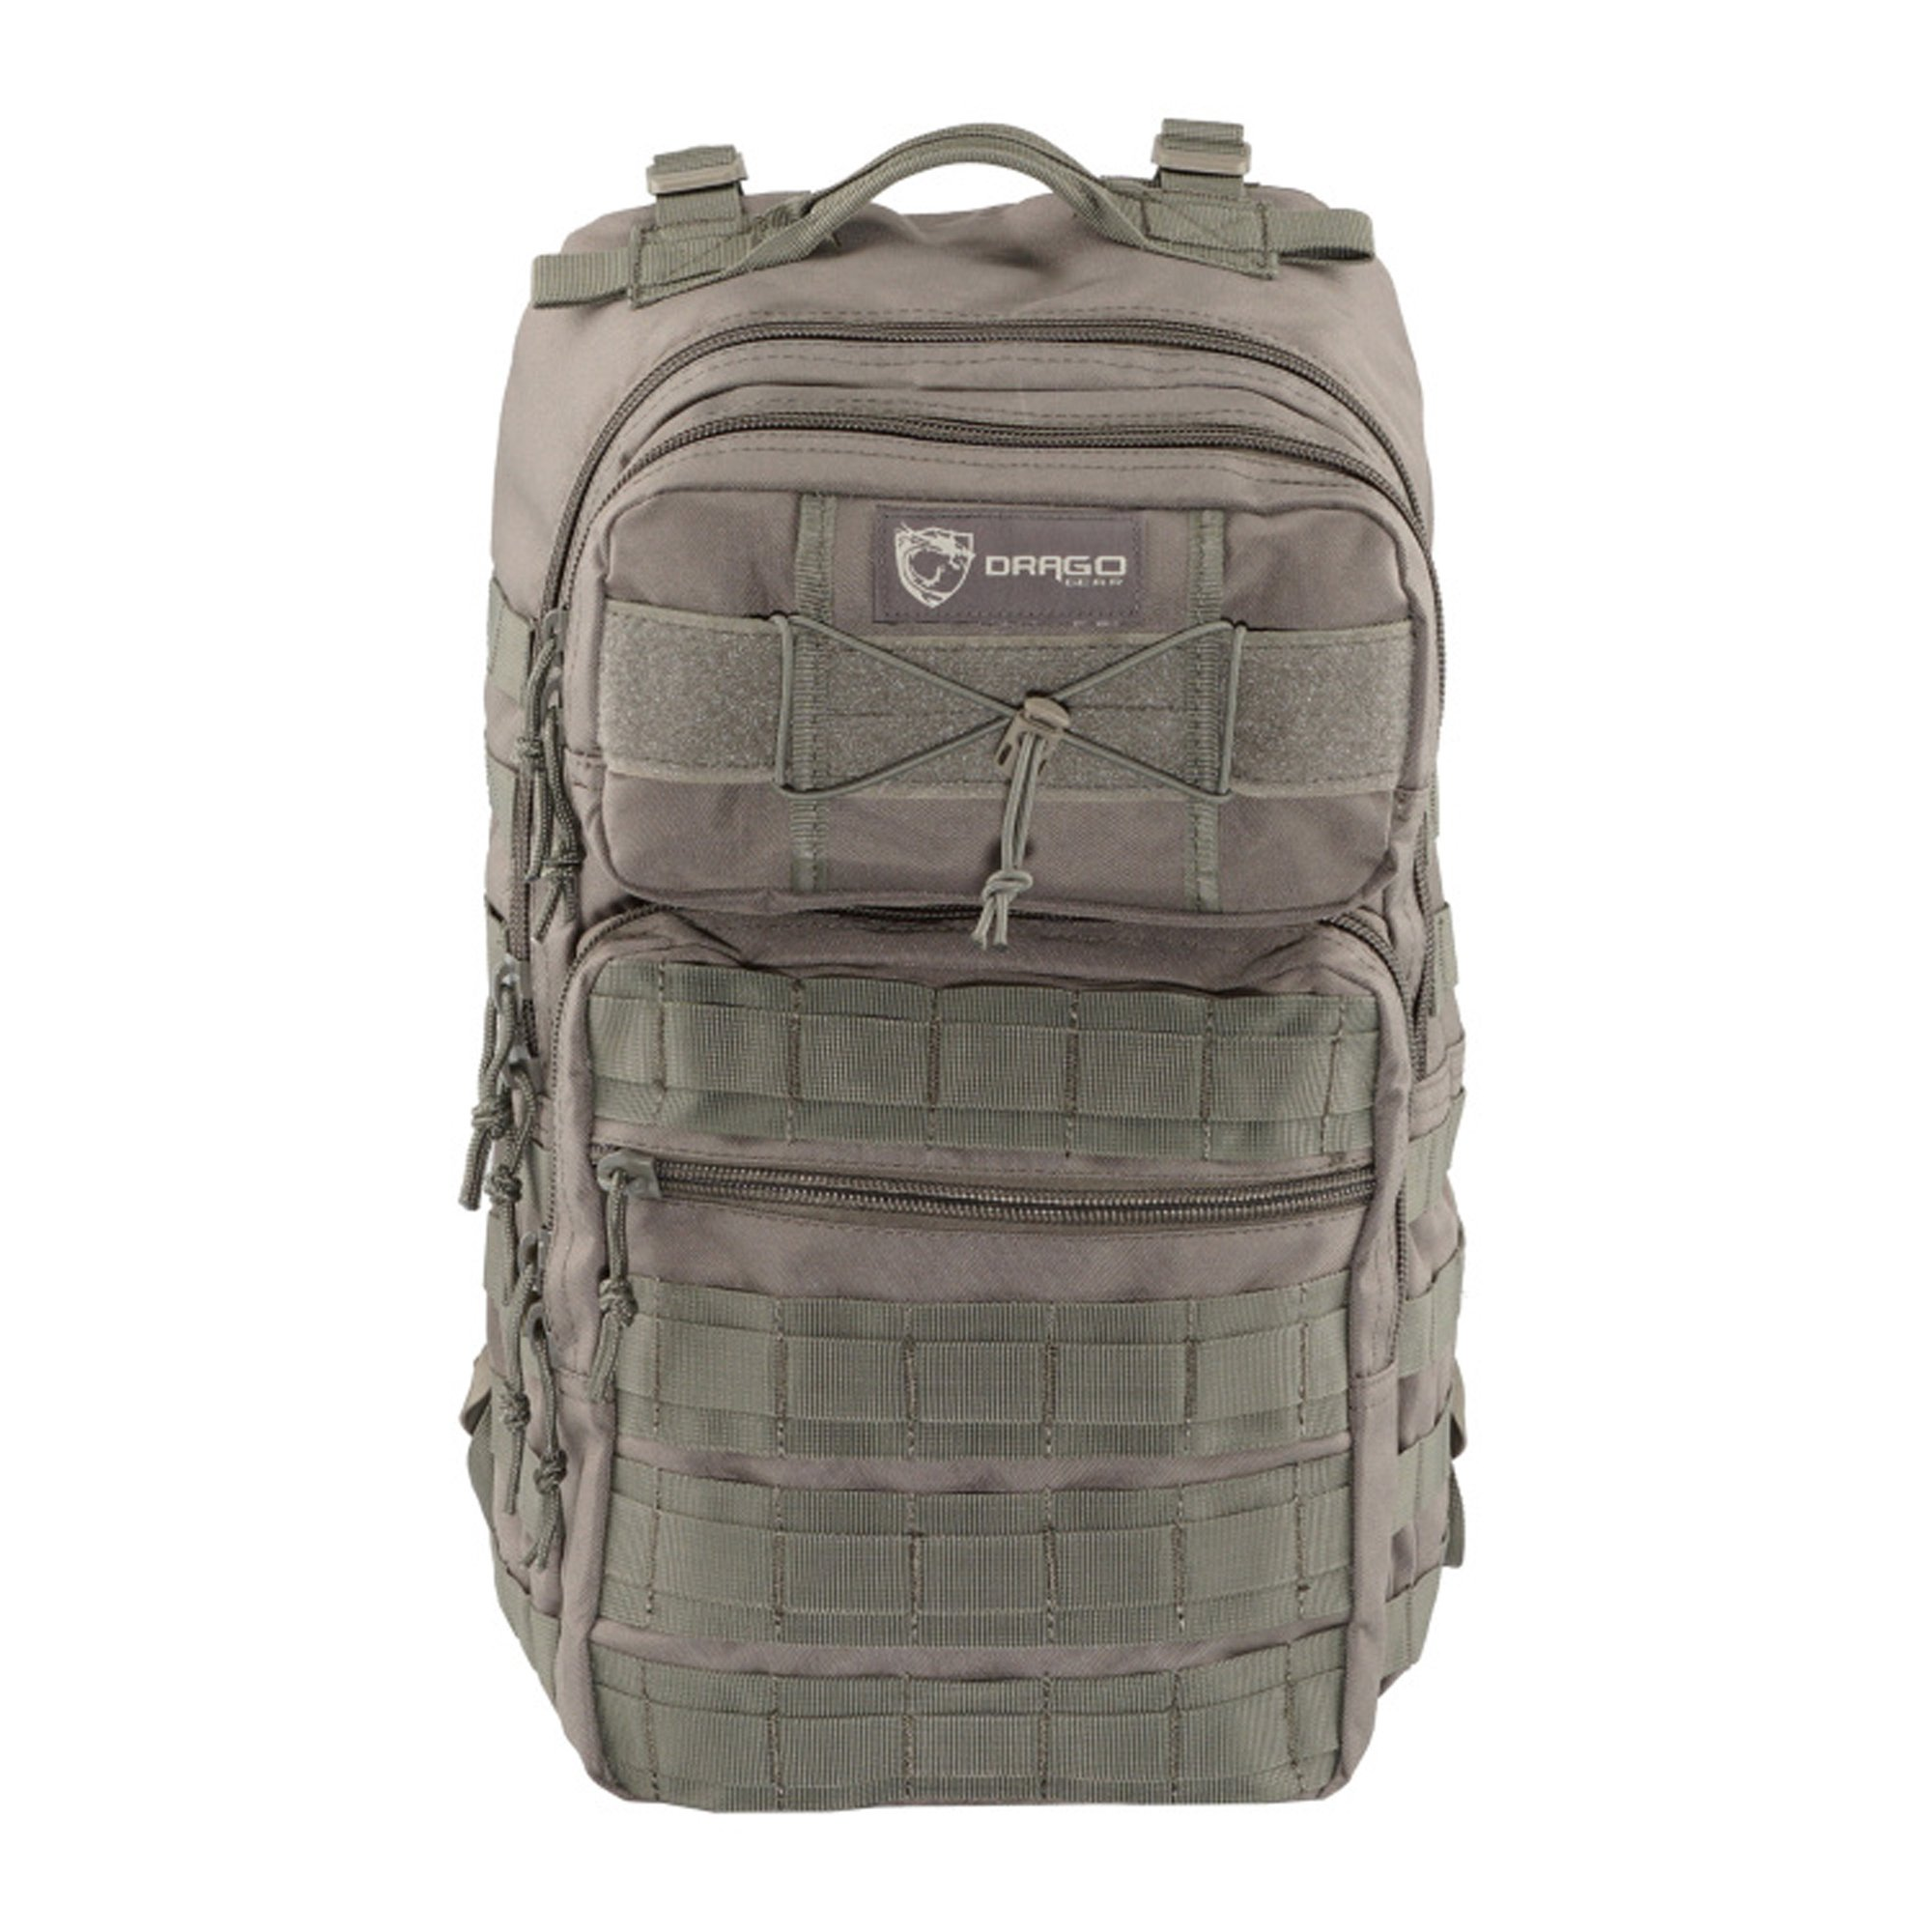 Drago Gear Ranger Laptop Backpack Gy